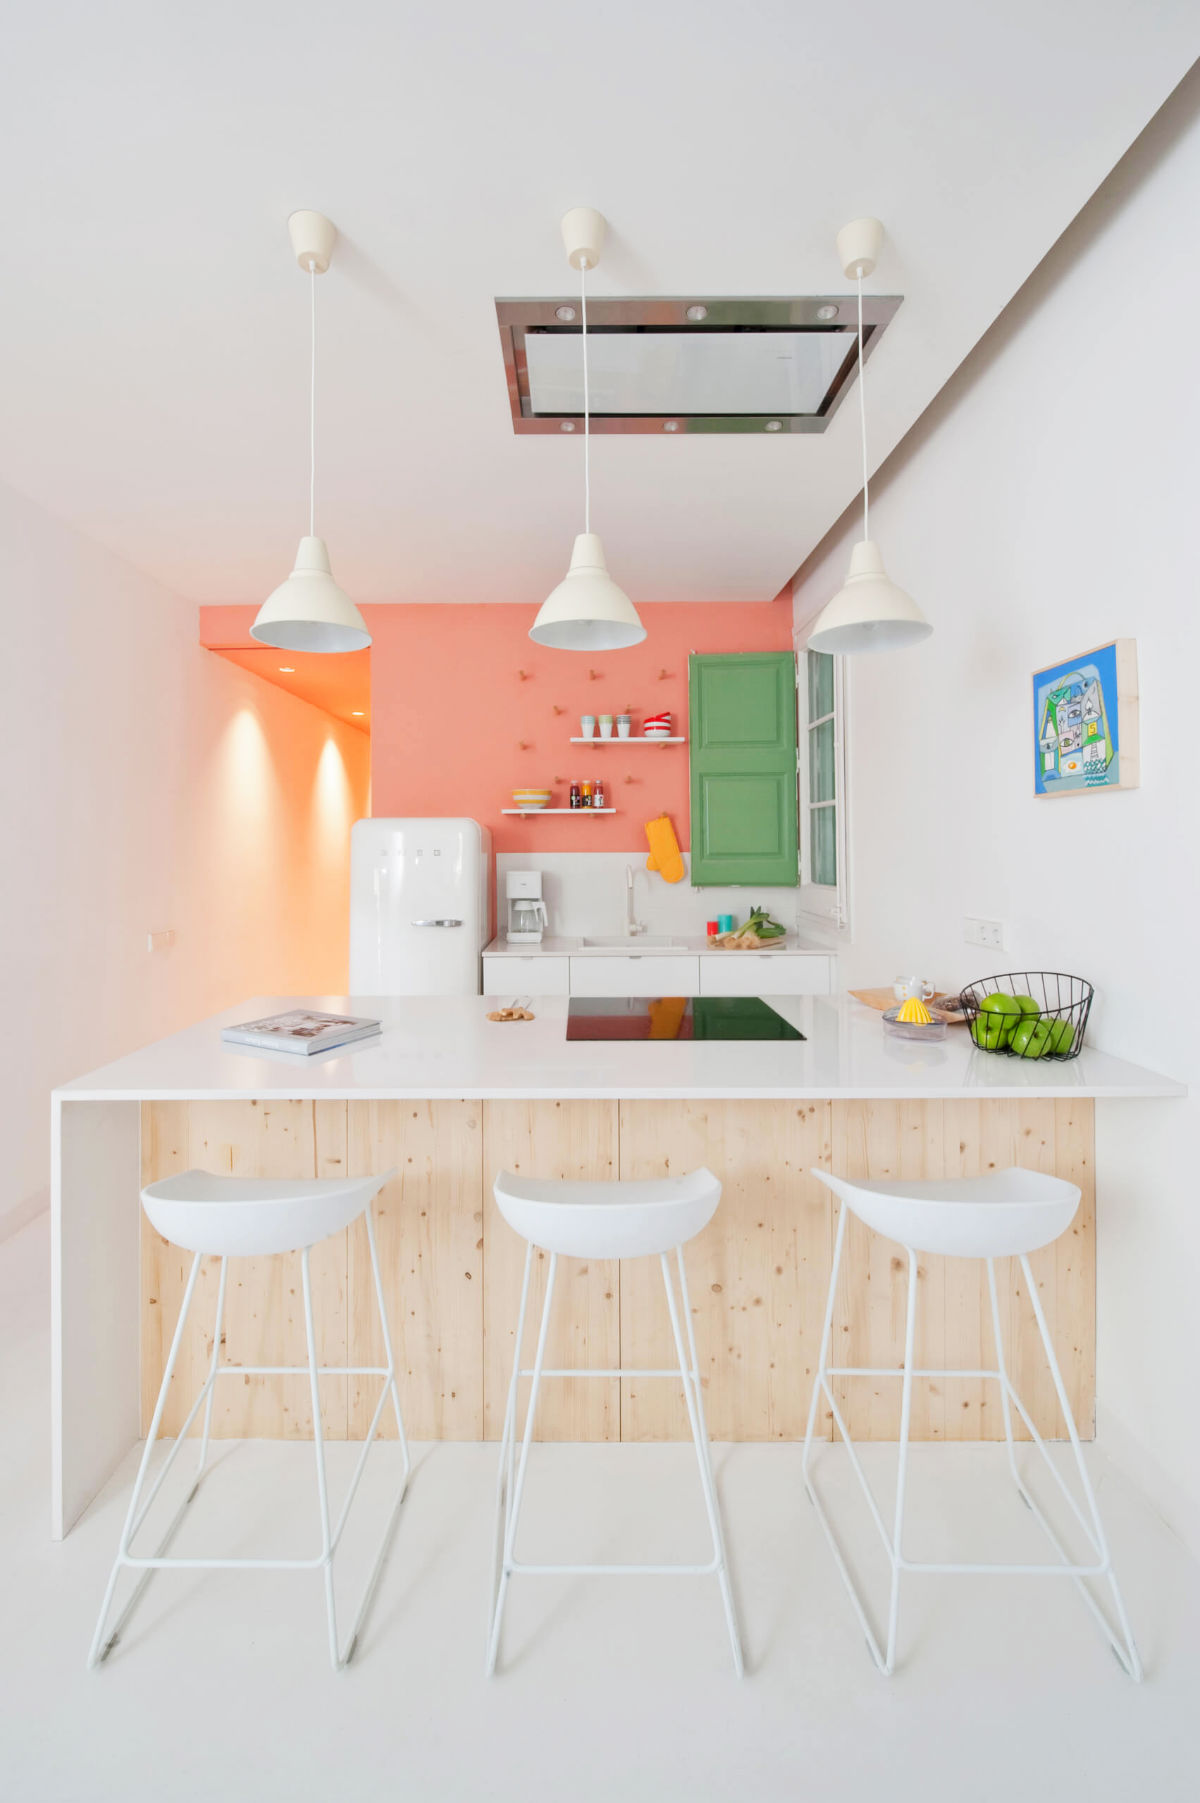 51 Inspirational Pink Kitchens With Tips & Accessories To Help You Design Yours images 11